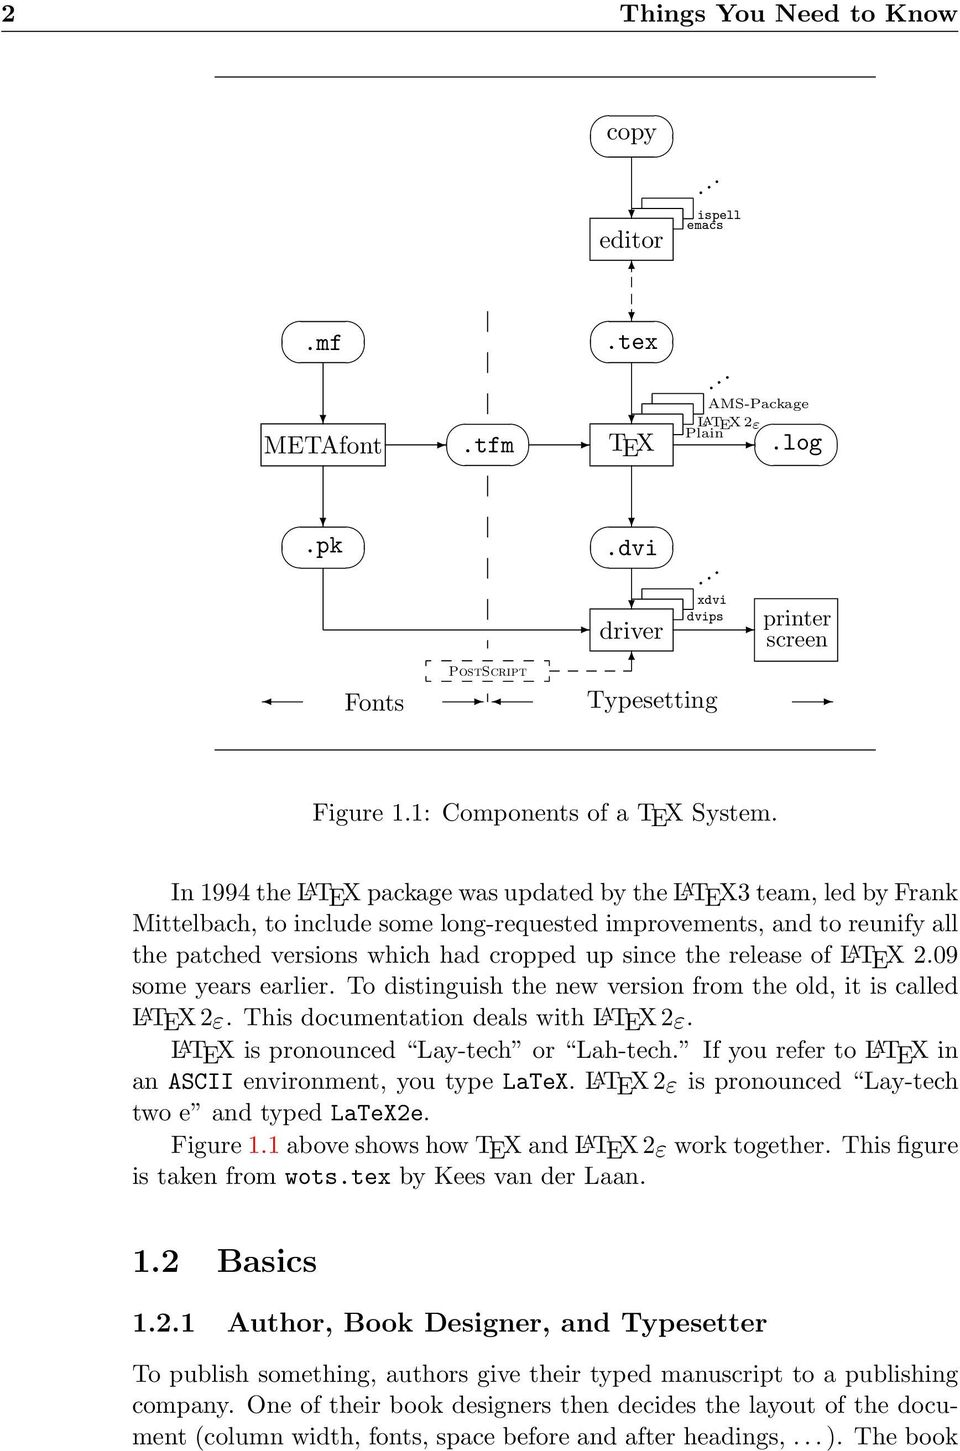 In 1994 the L A TEX package was updated by the L A TEX3 team, led by Frank Mittelbach, to include some long-requested improvements, and to reunify all the patched versions which had cropped up since